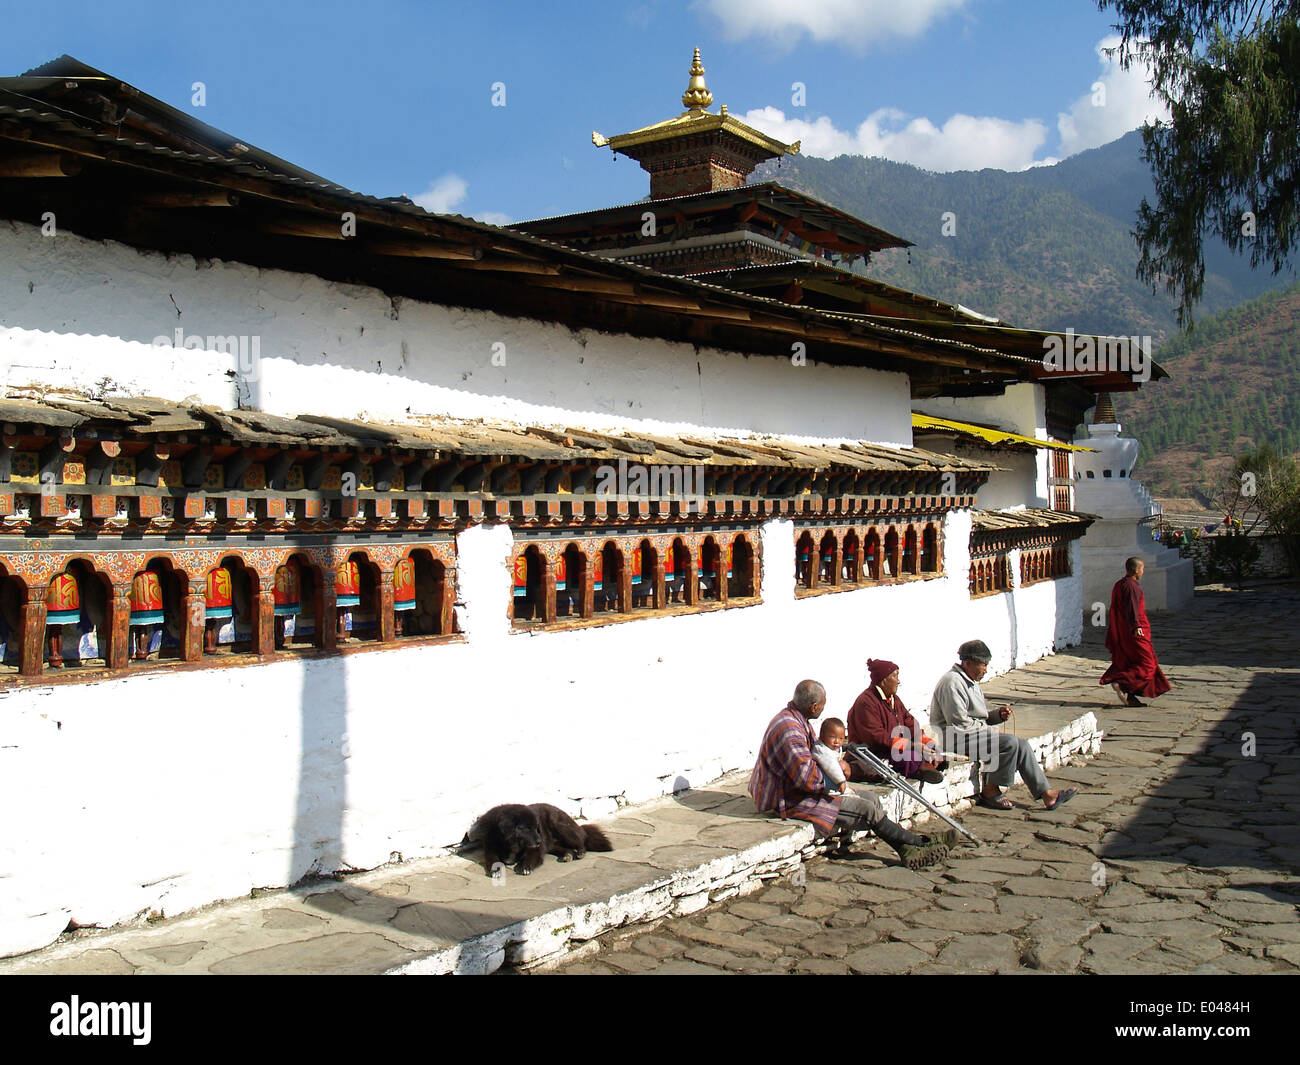 Monks and local people at the Kichu Monastery in Paro,Bhutan - Stock Image